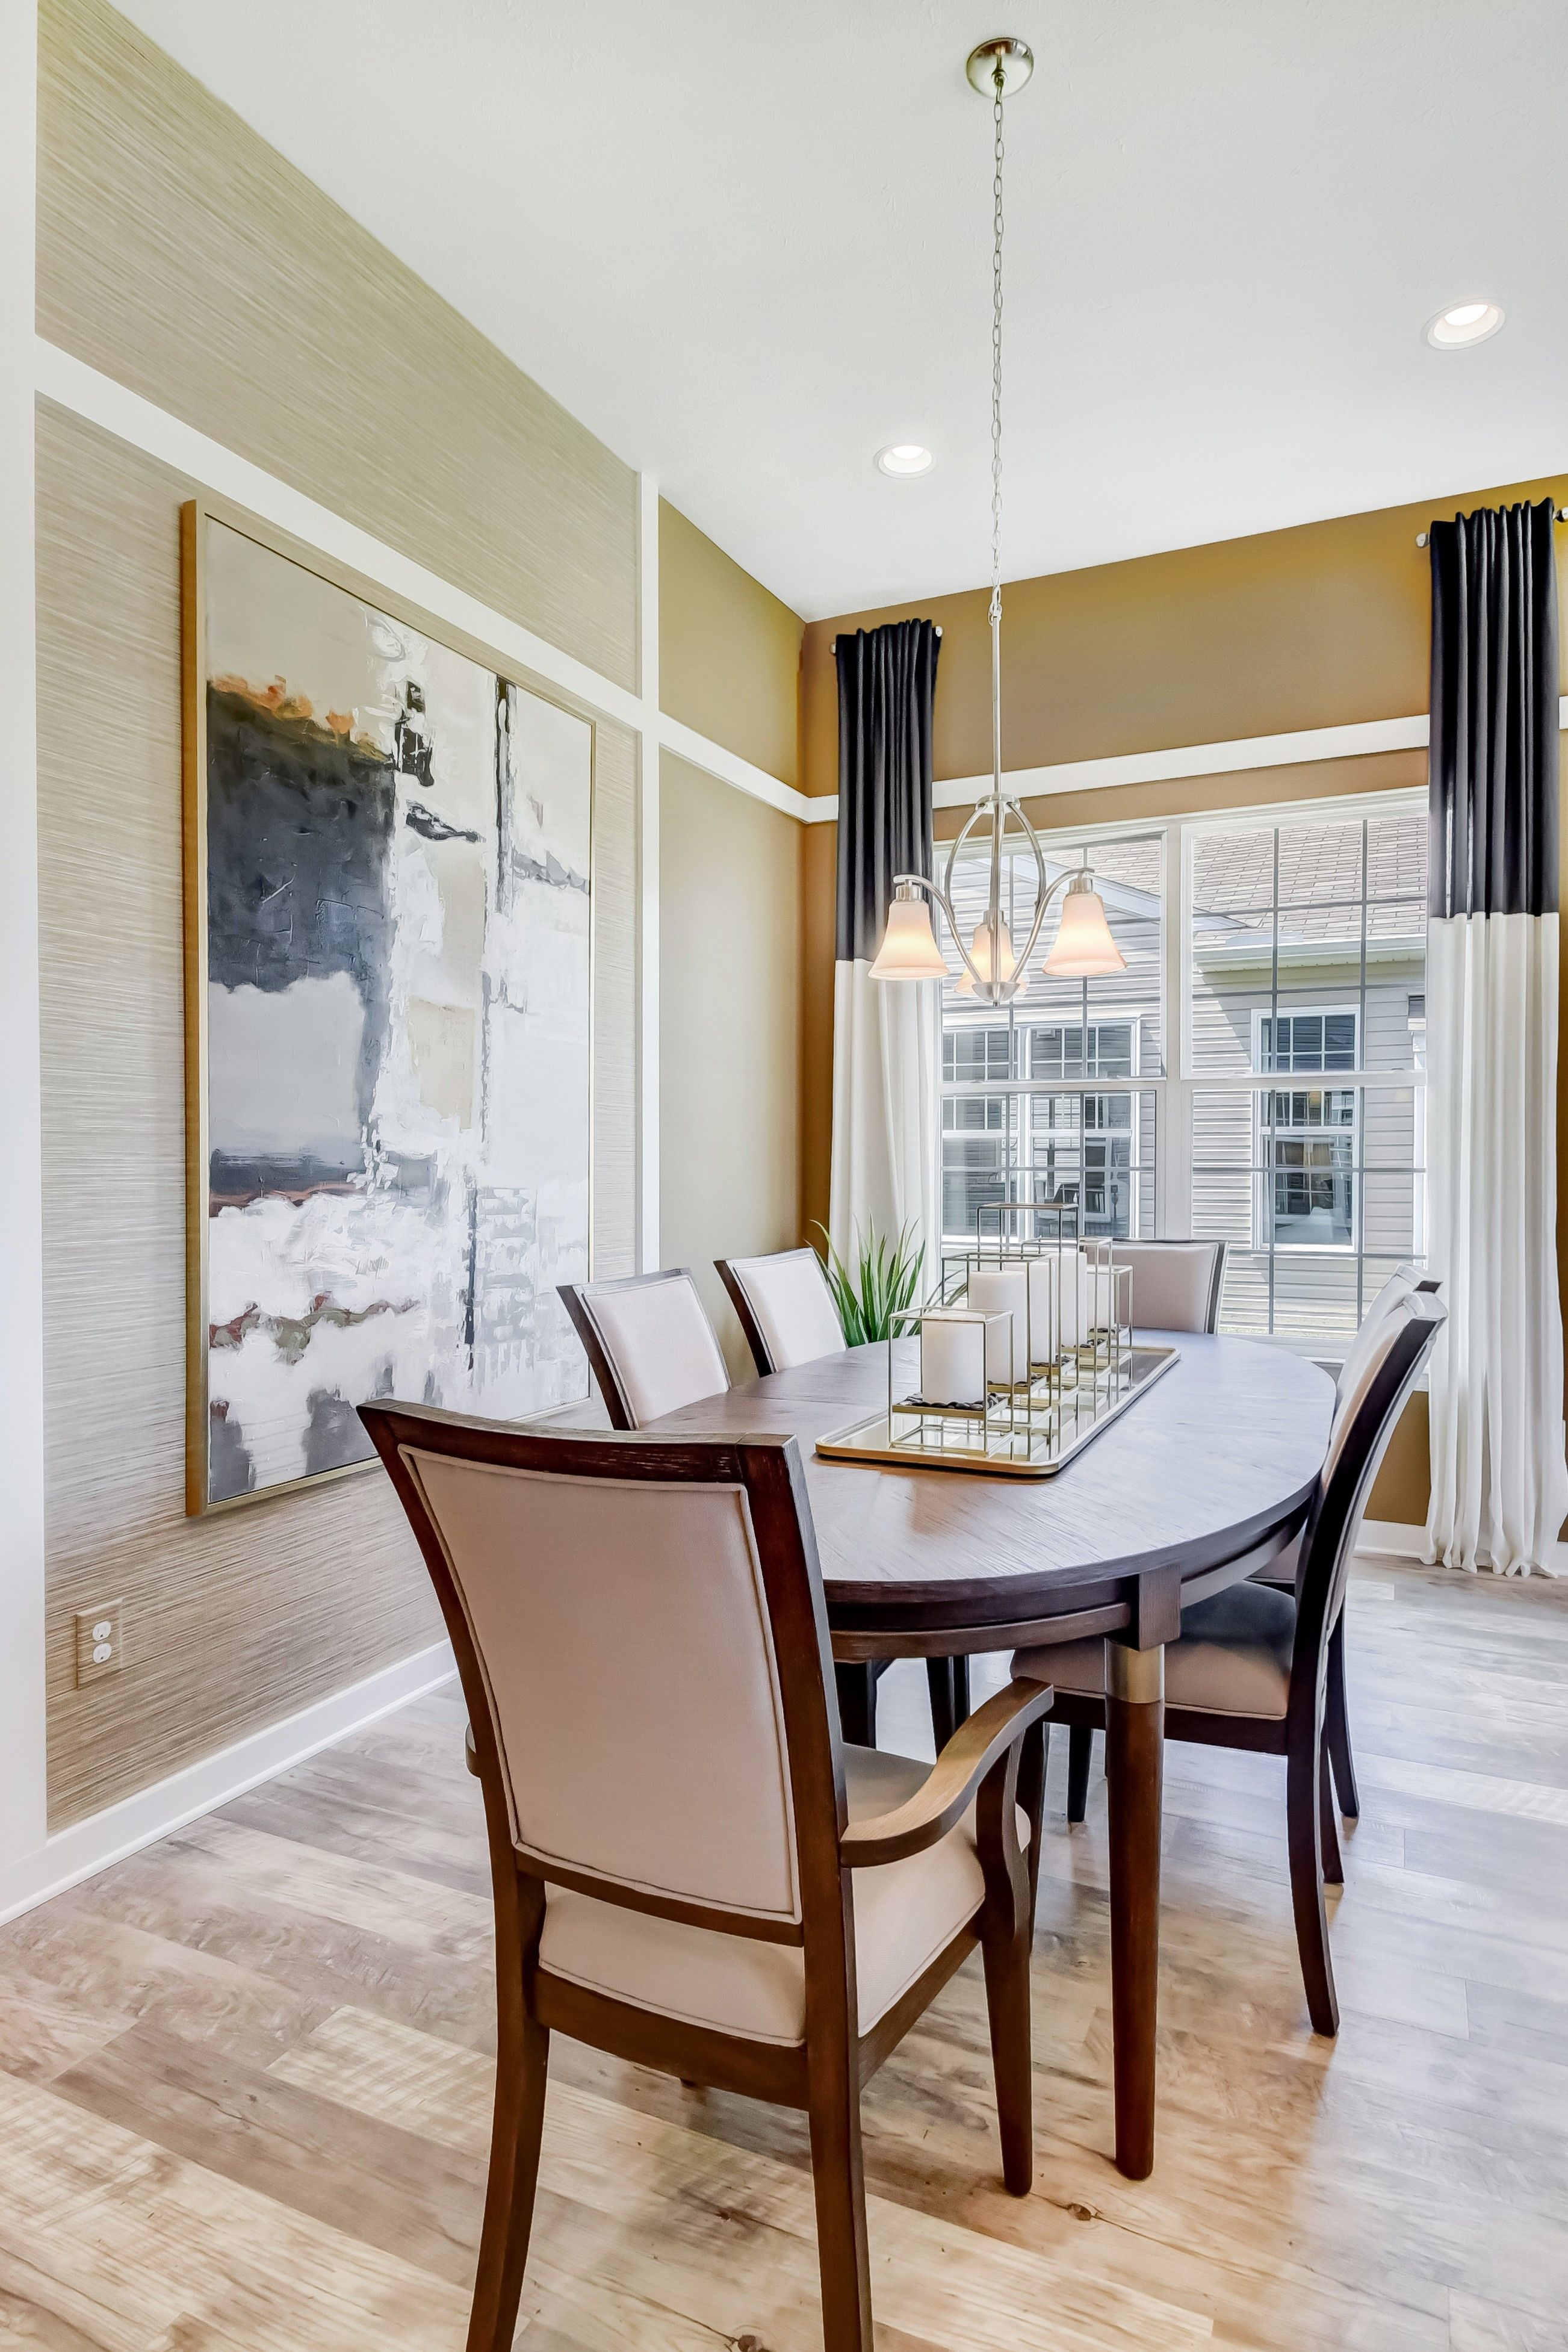 Living Area featured in the Barclay By K. Hovnanian's® Four Seasons in Cleveland, OH